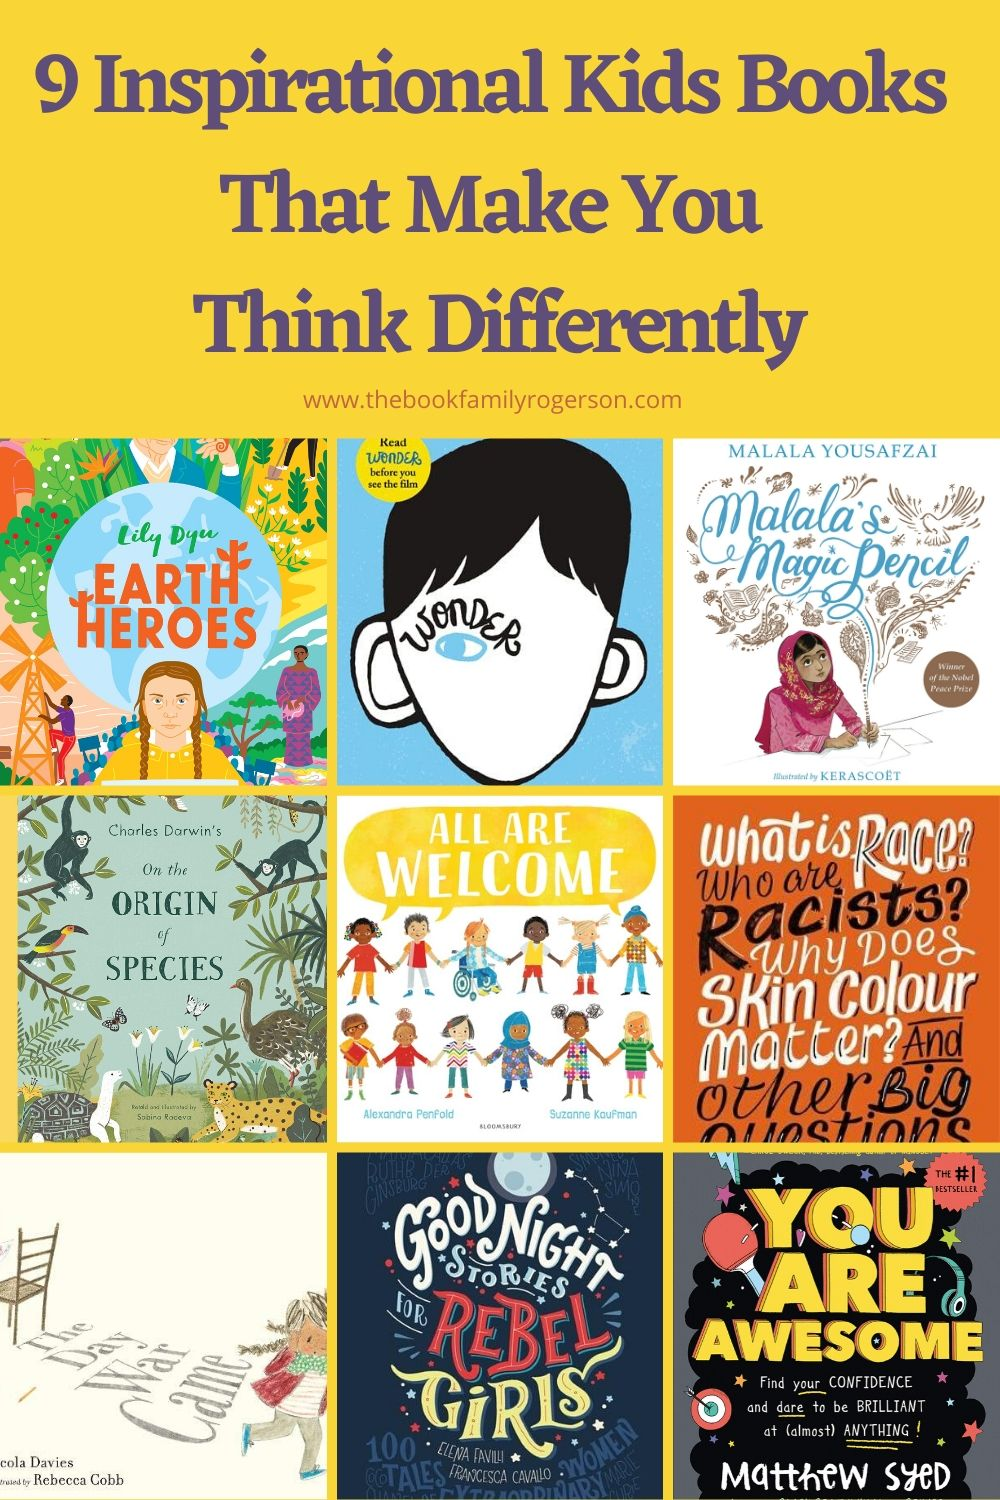 9 Inspirational Kids Books That Make You Think Differently